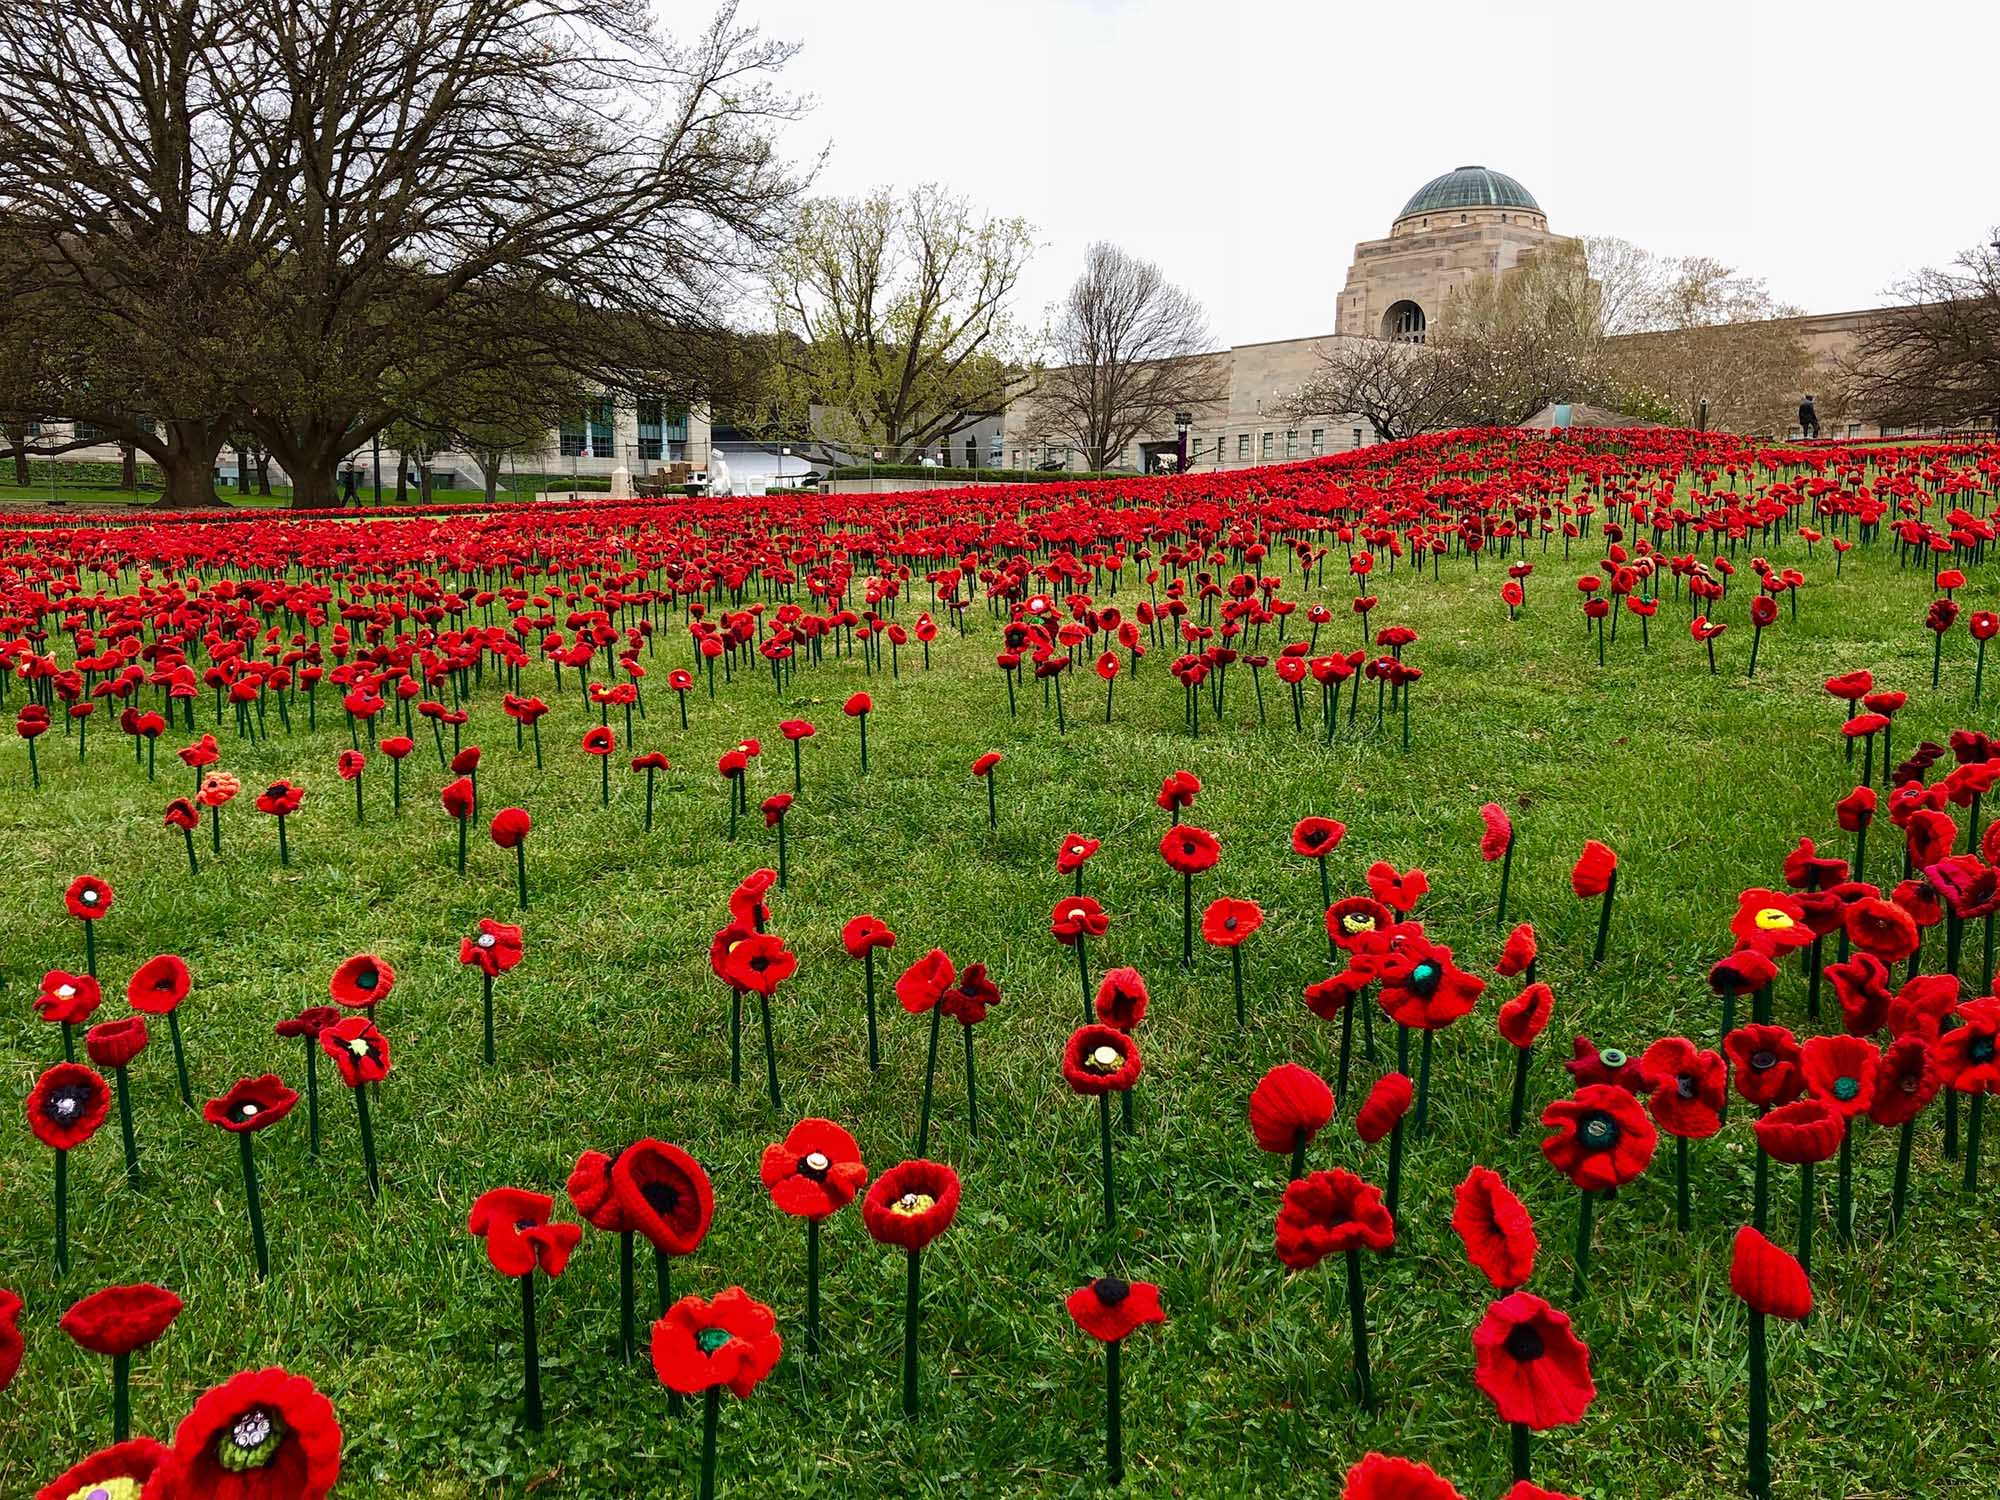 Landscape design for 5000 poppies